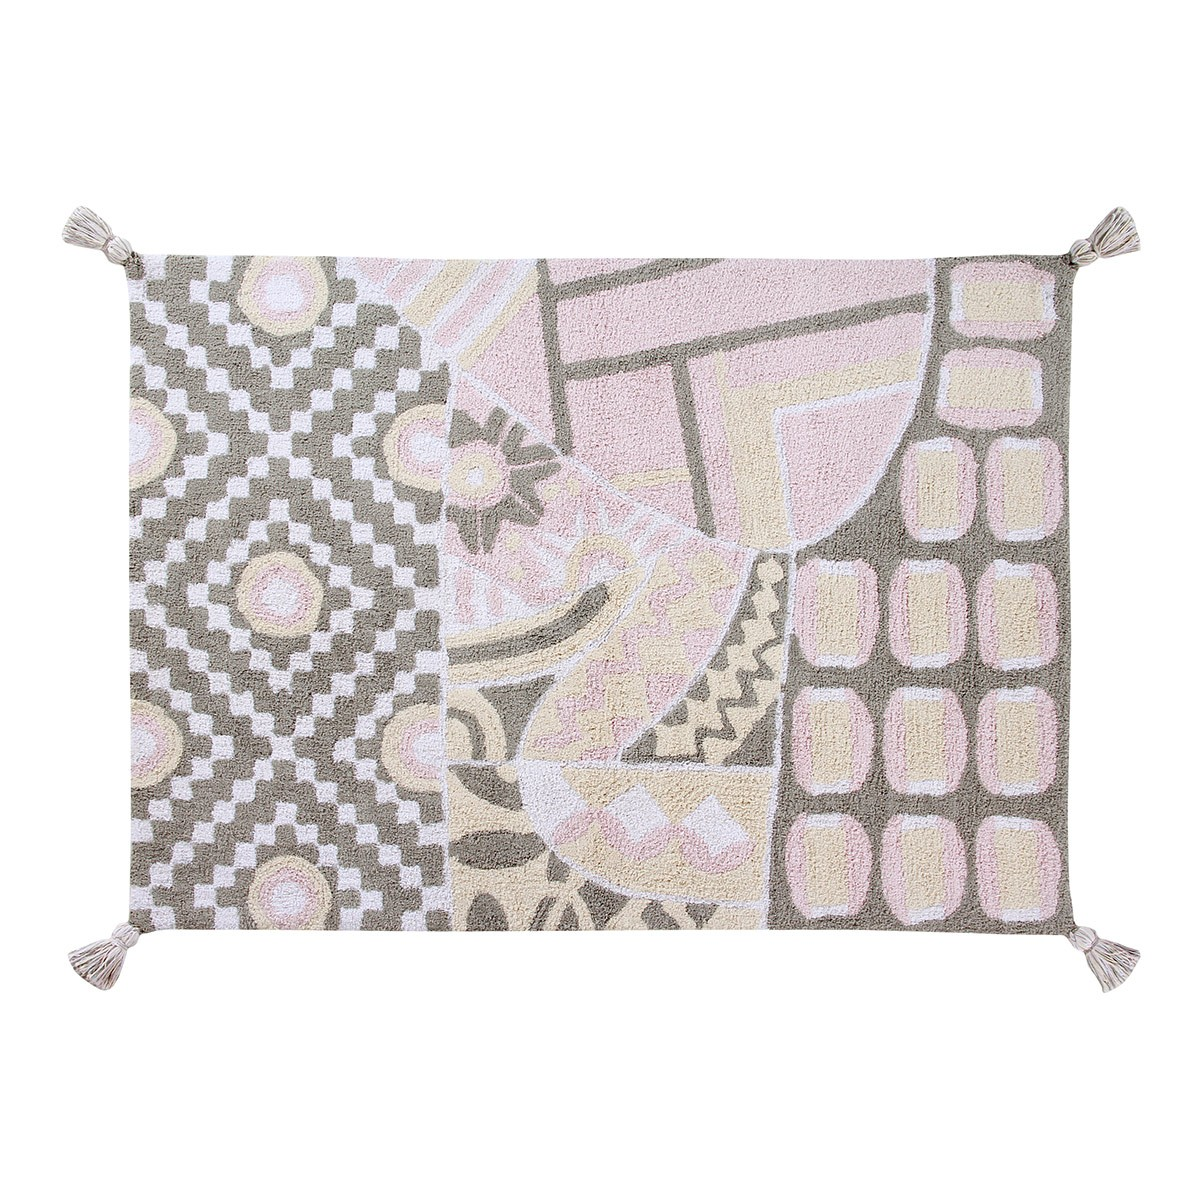 Πλενόμενο Χαλί (120×160) Lorena Canals Indian Bag Grey-Pink